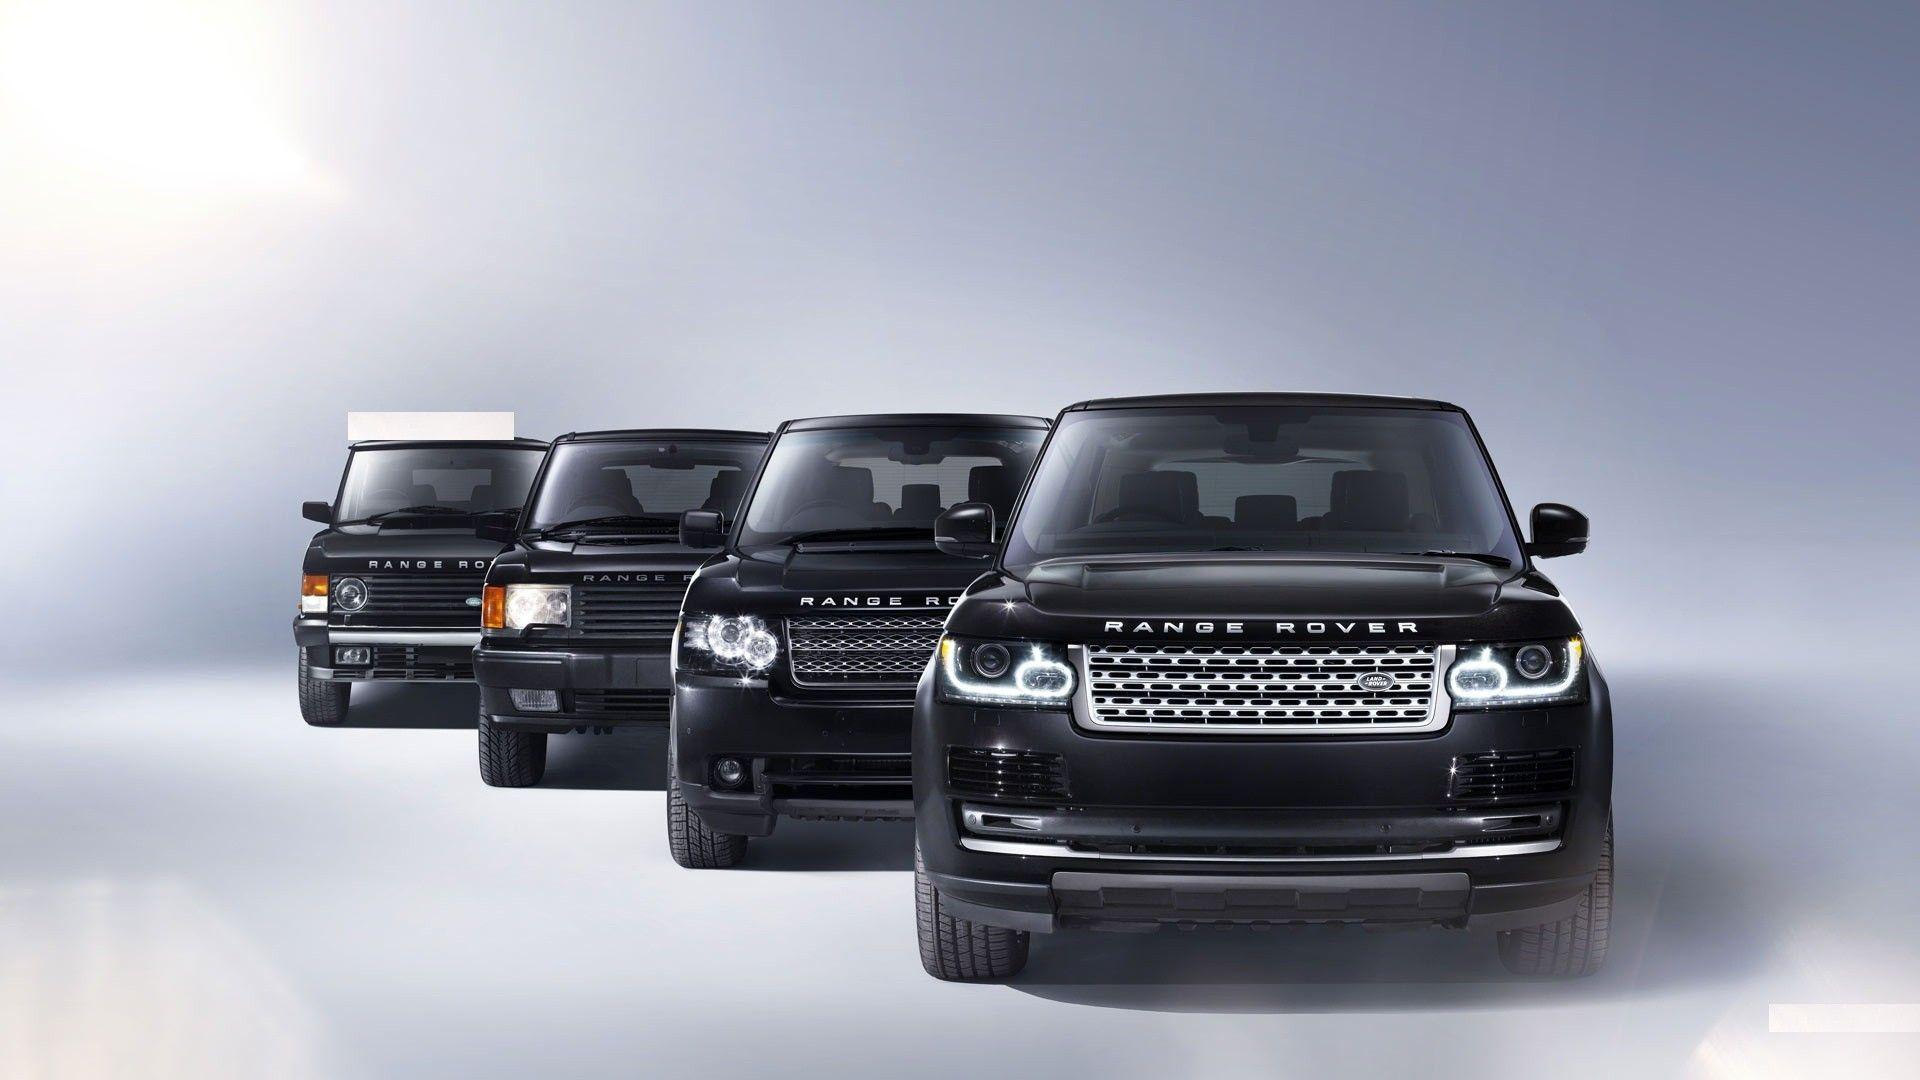 Range Rover Wallpaper HD - WallpaperSafari